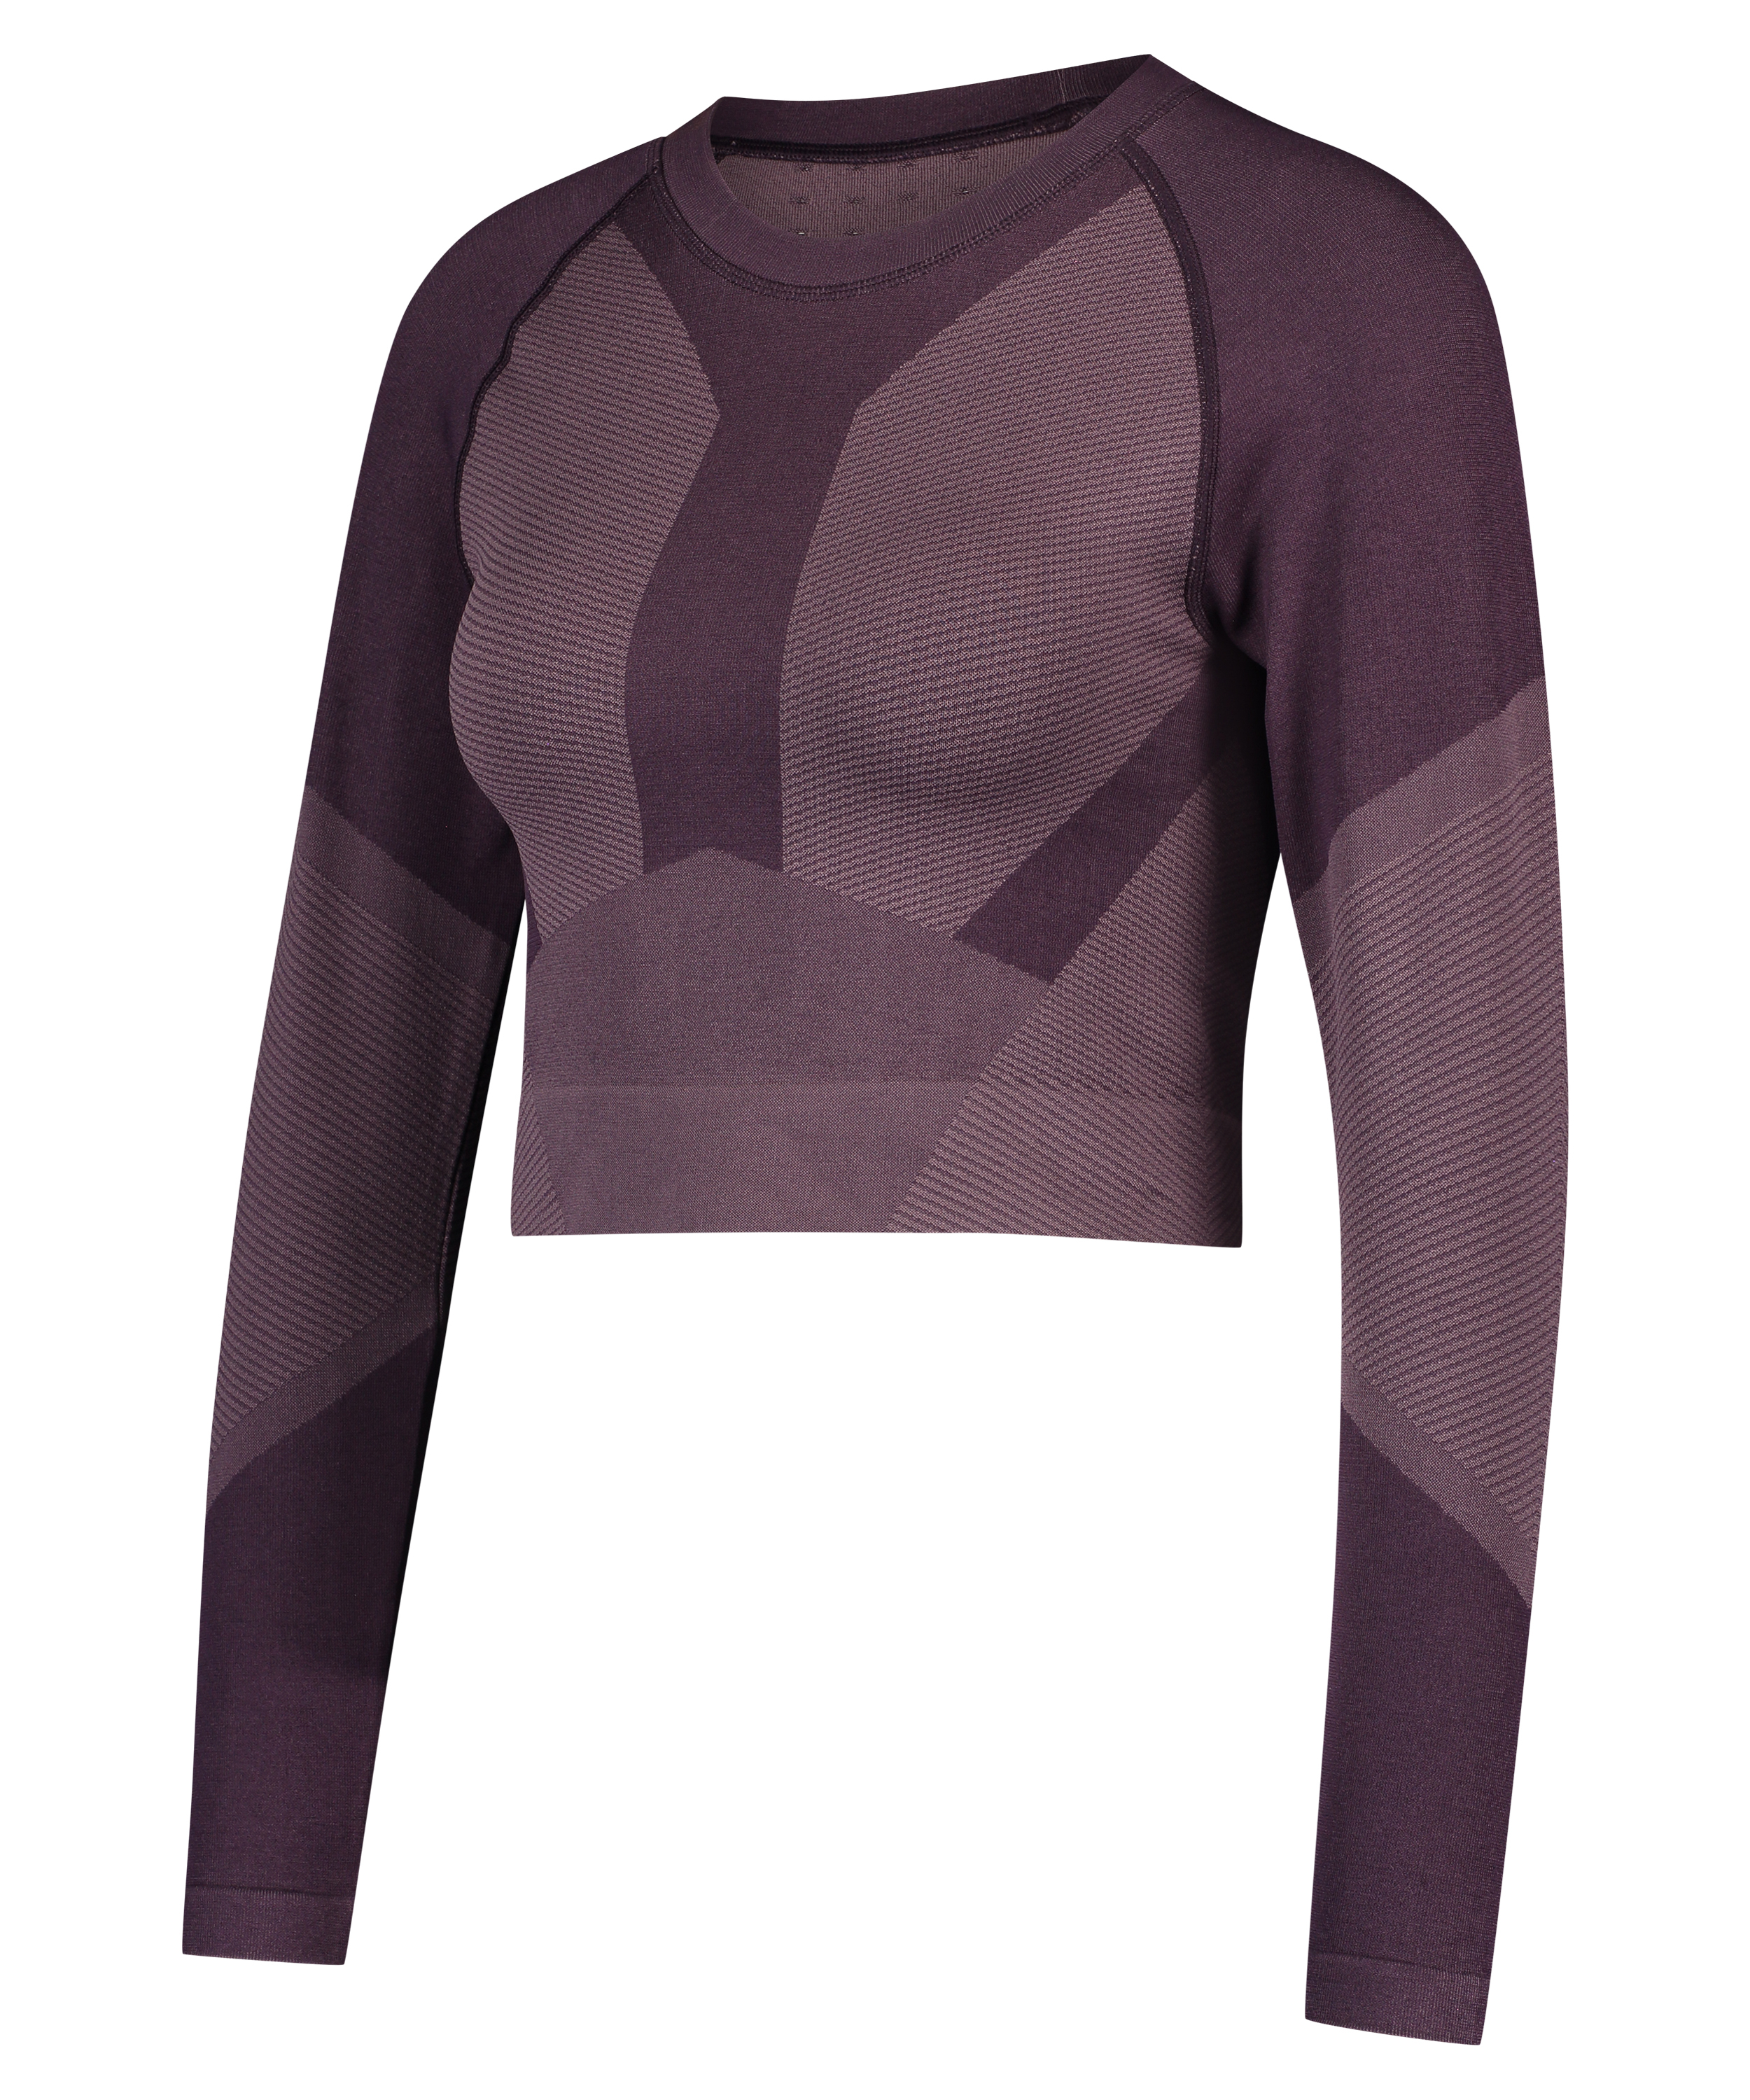 HKMX The Motion Crop Top, Paars, main